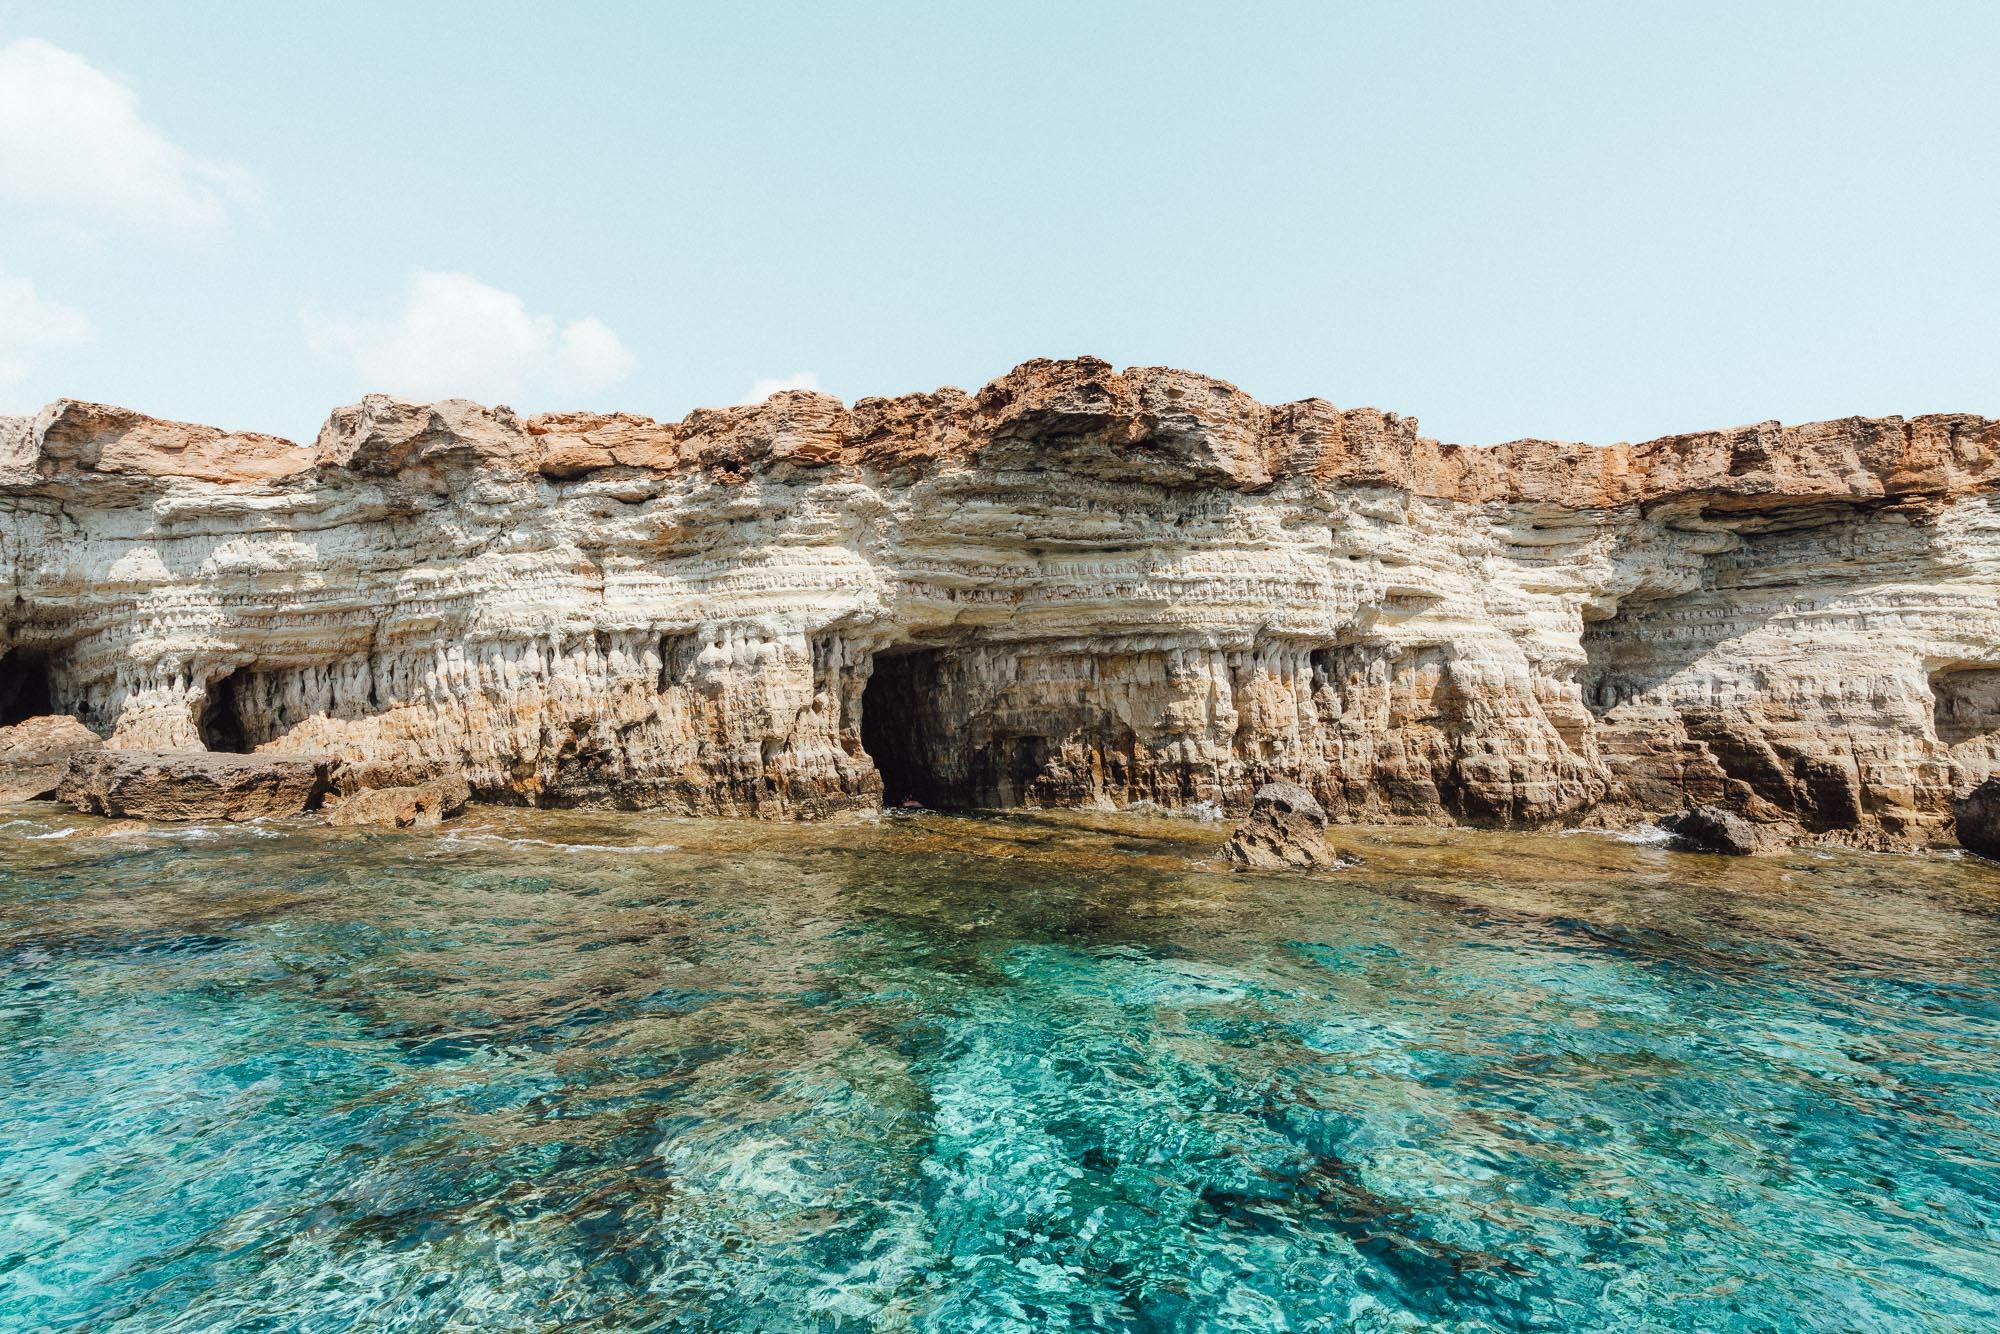 Sea caves in Ayia Napa Cyprus via @finduslost